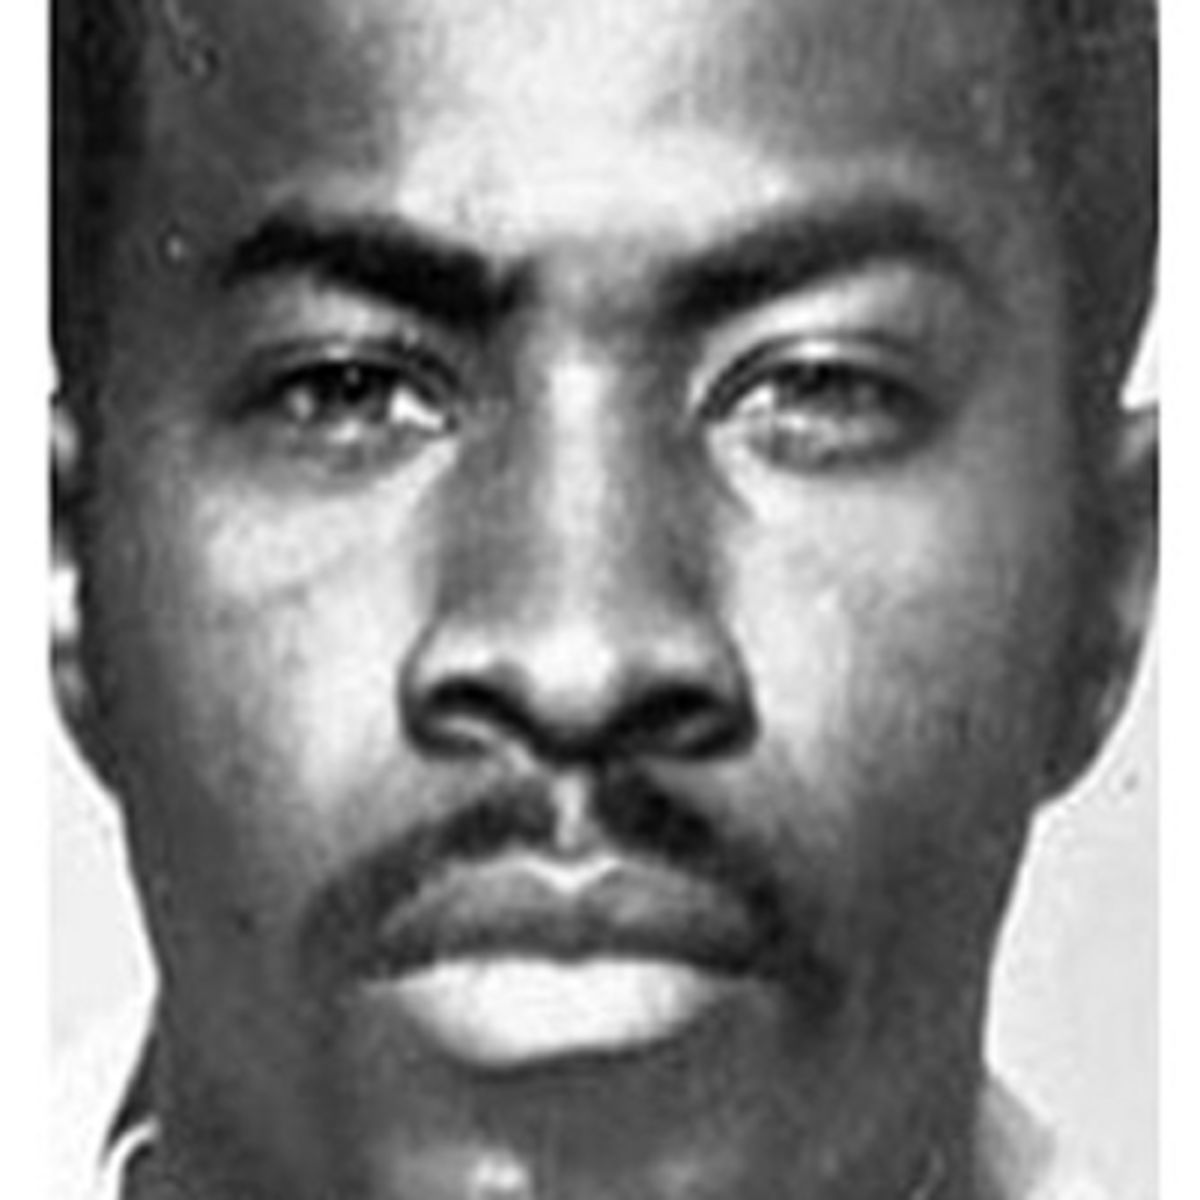 Infamous Supreme Team gang leader and crack-cocaine trafficker Kenneth McGriff was sentenced to life